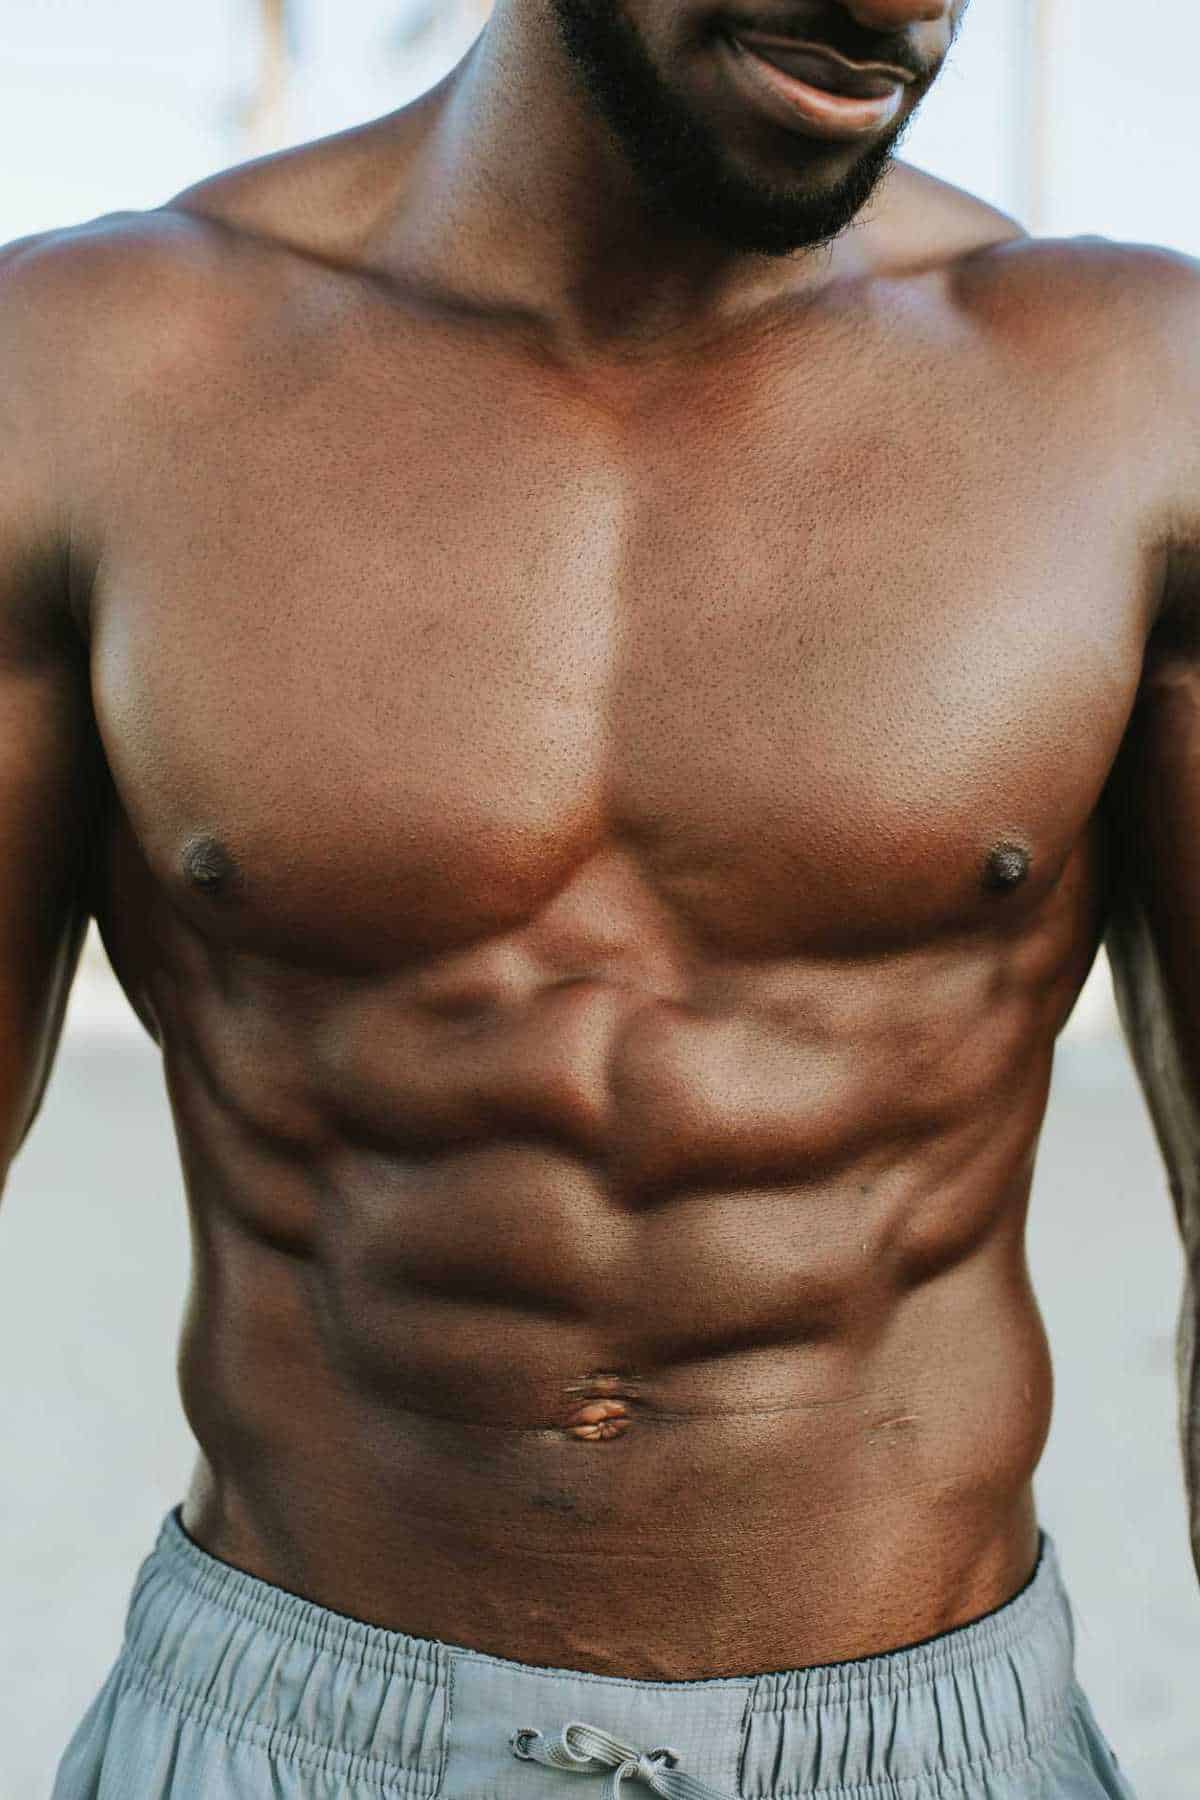 The 6 Best Workouts for Getting Six-Pack Abs